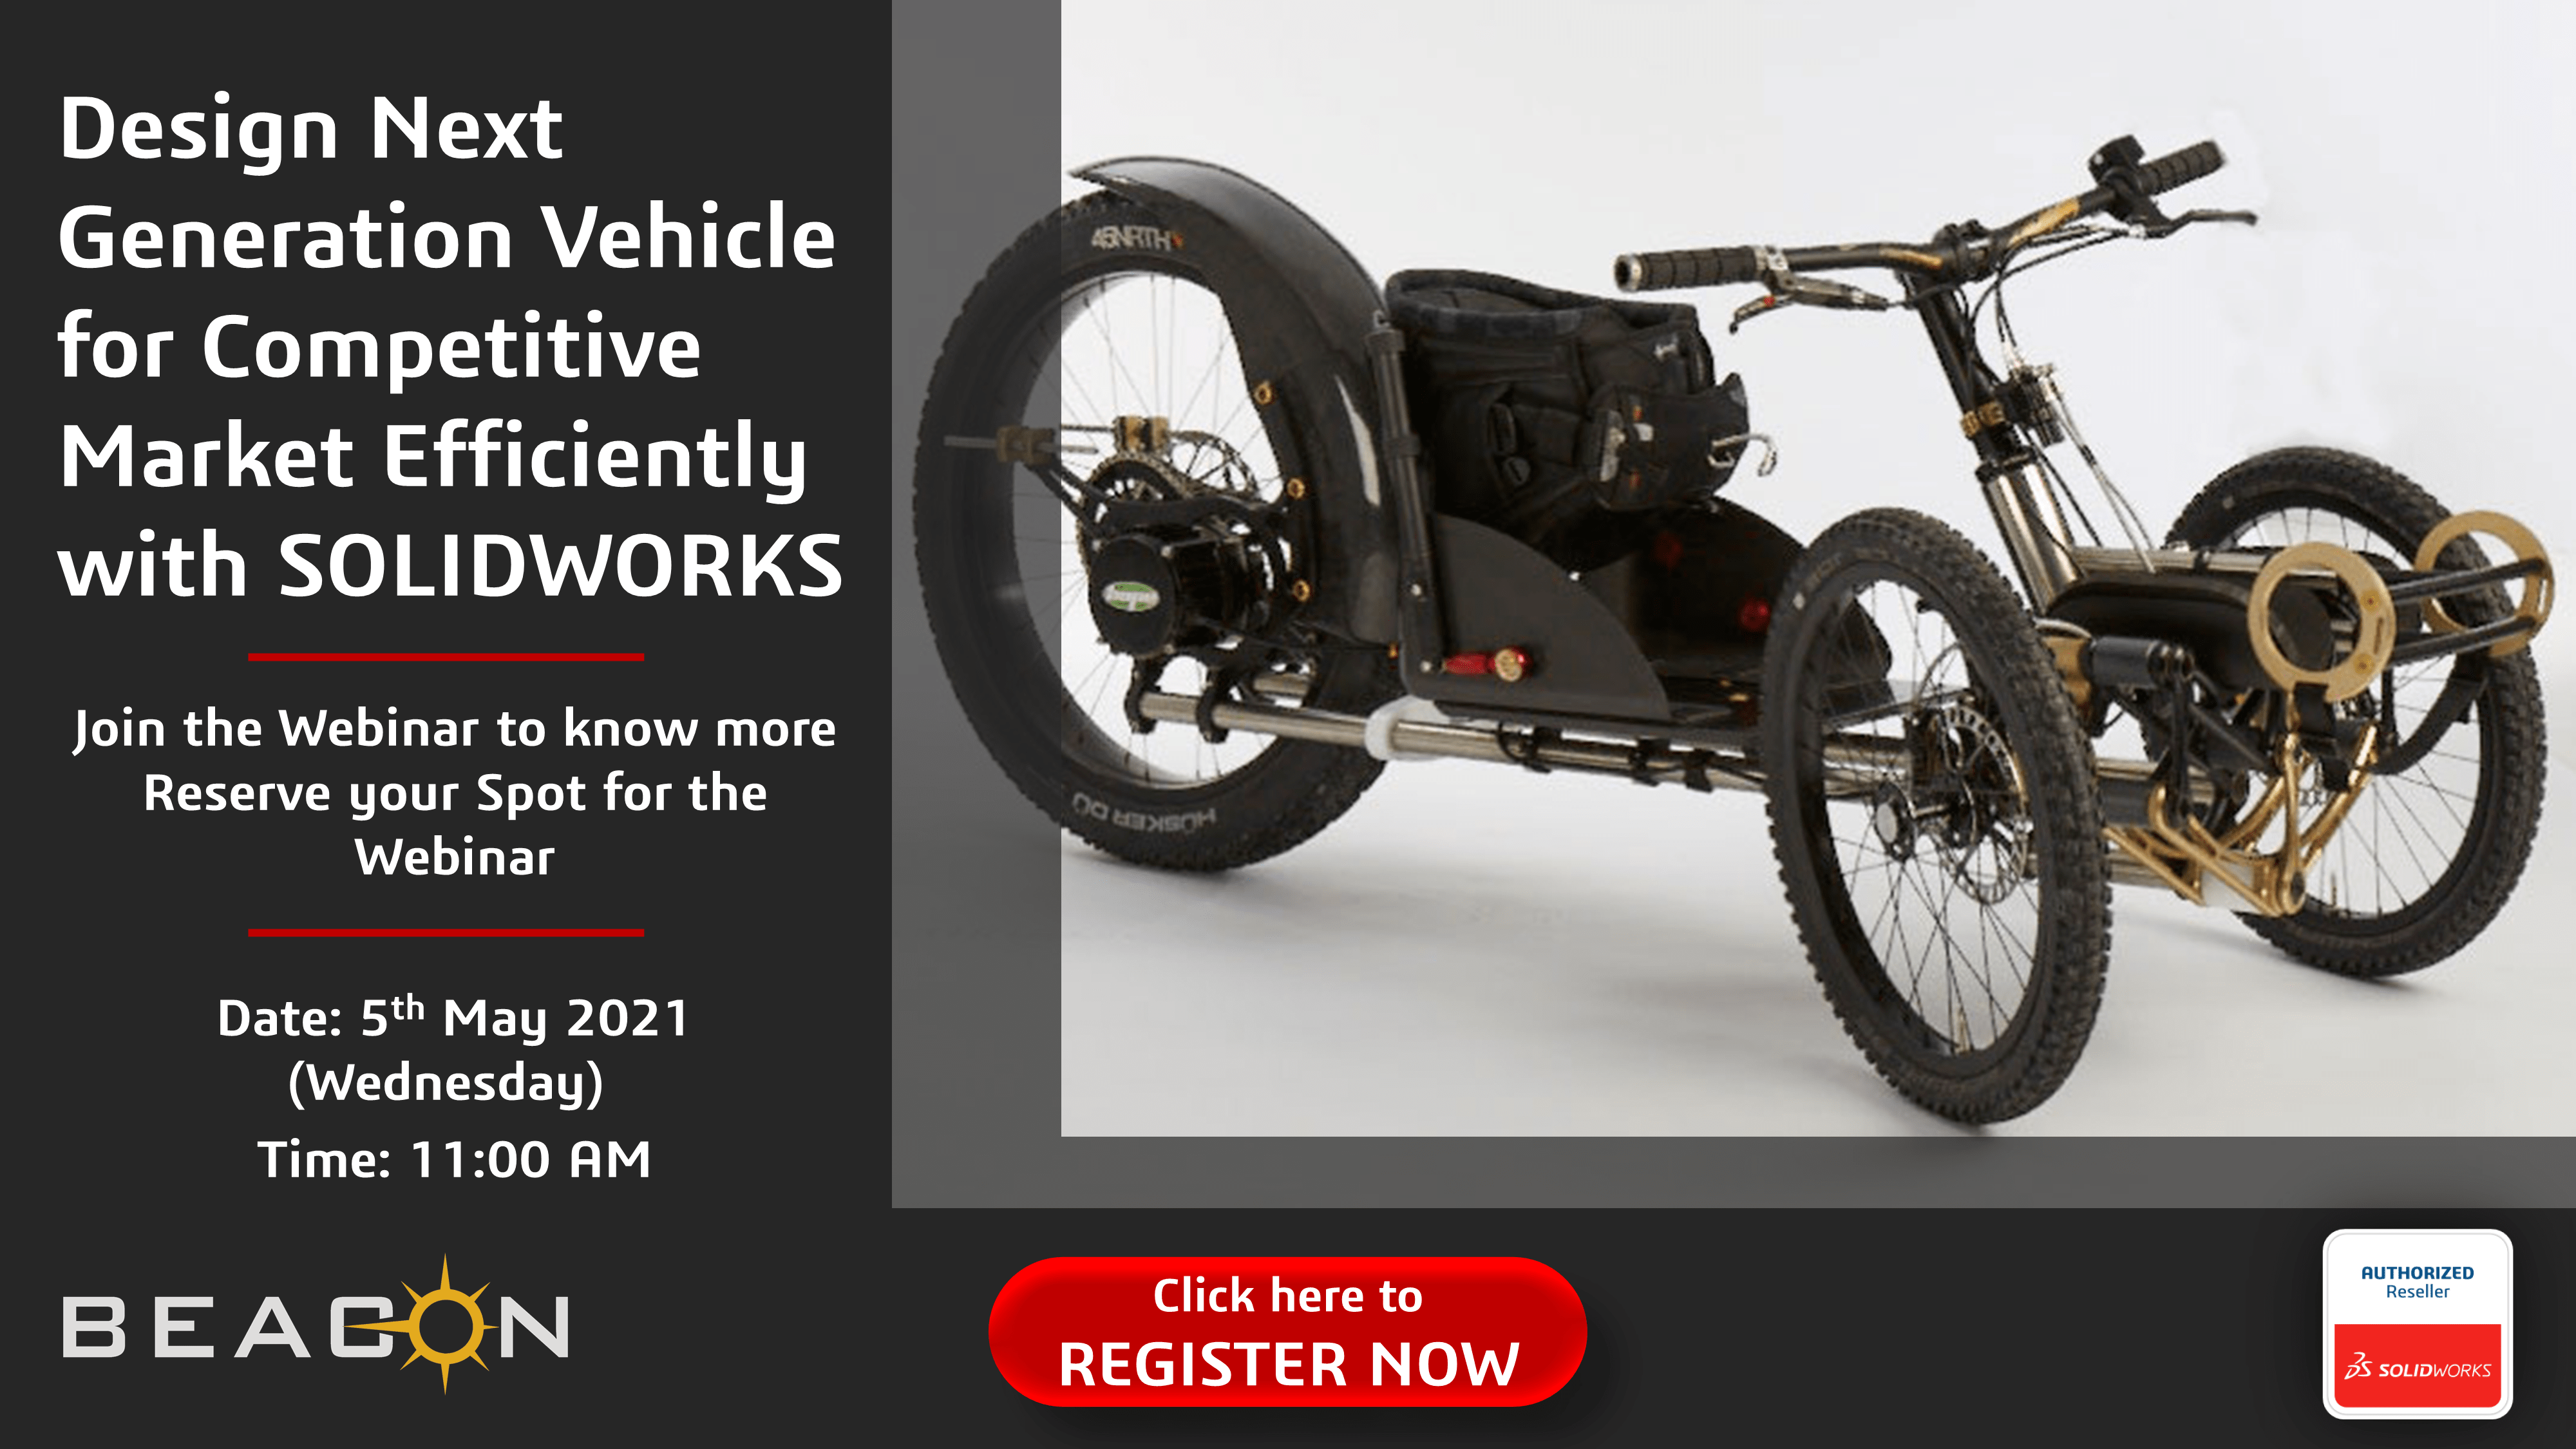 Design Next Generation Vehicle for Competitive Market Efficiently with SOLIDWORKS